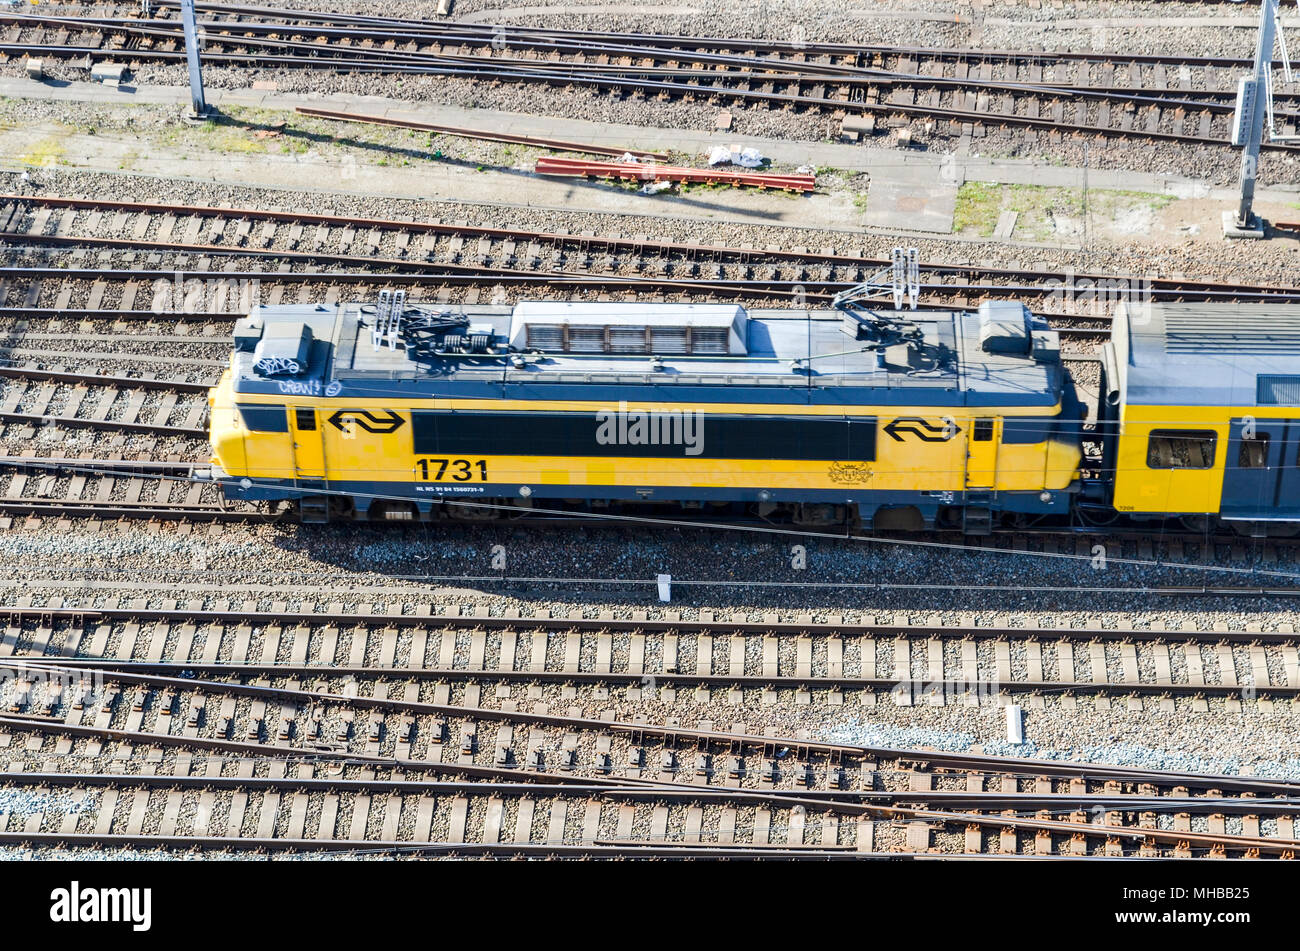 Aerial view of a NS locomotive in Centraal Station, Amsterdam, Netherlands - Stock Image